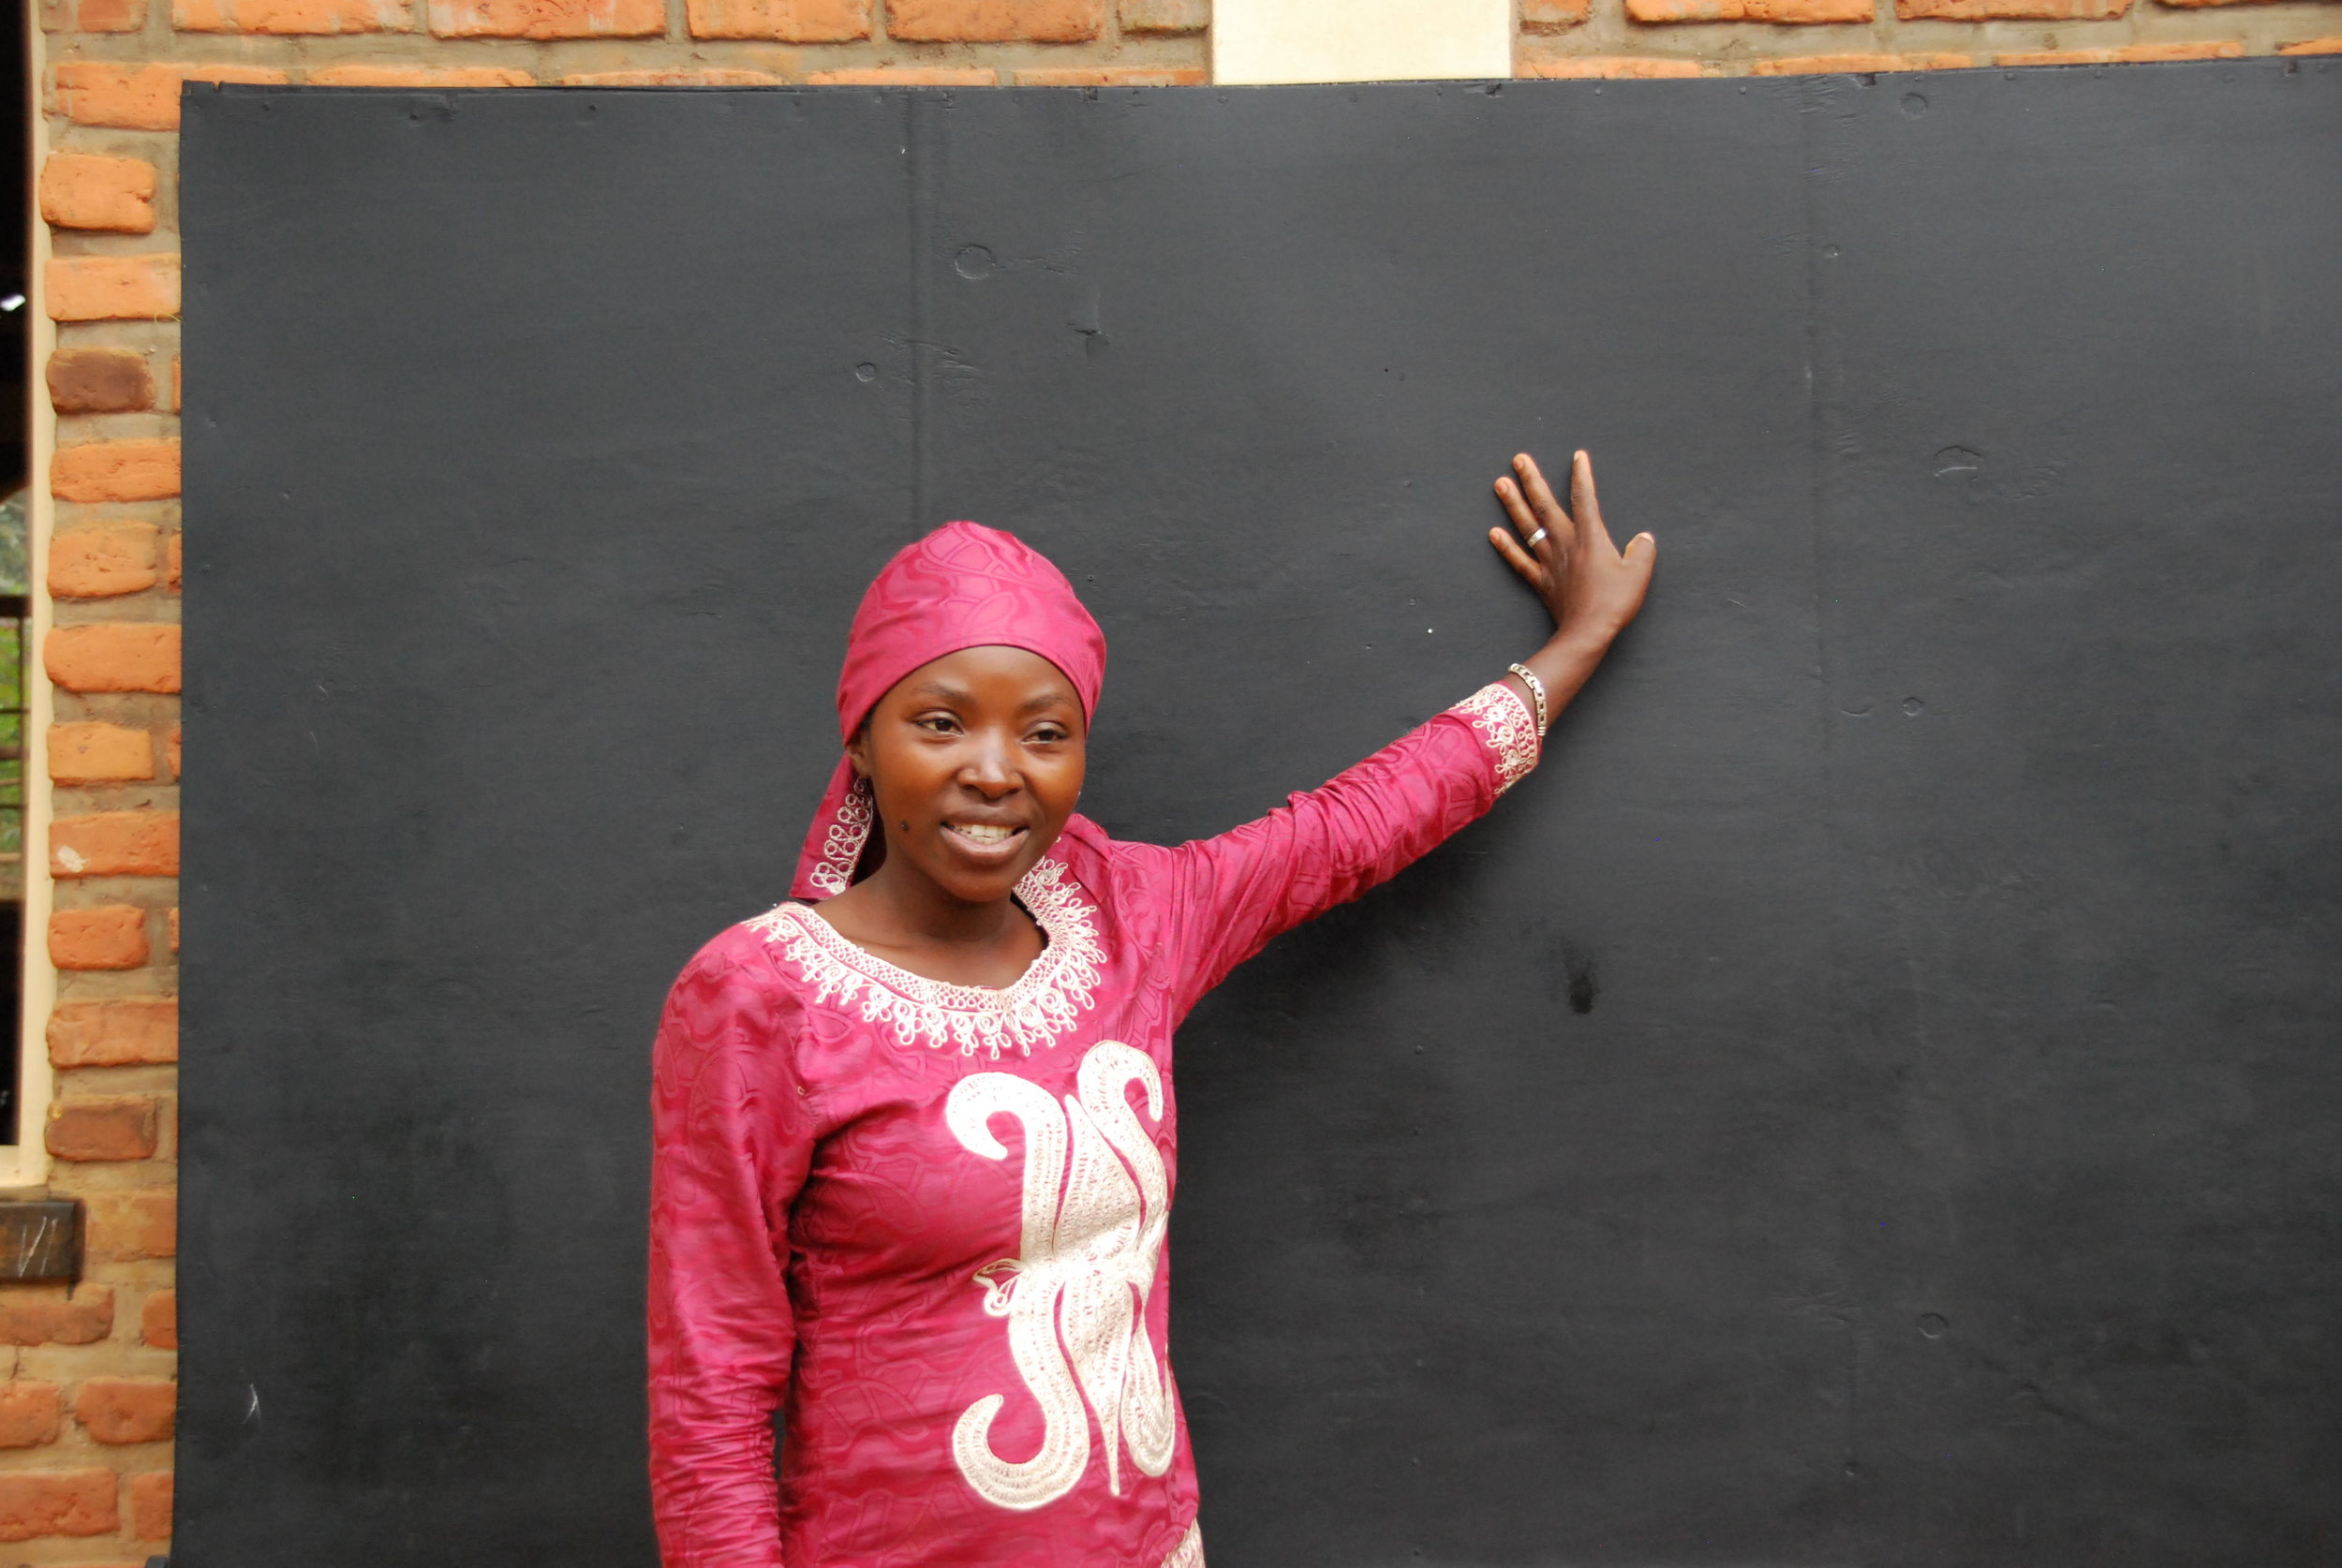 Jane, the Nkombo island teacher, standing with her new chalkboard for their class!